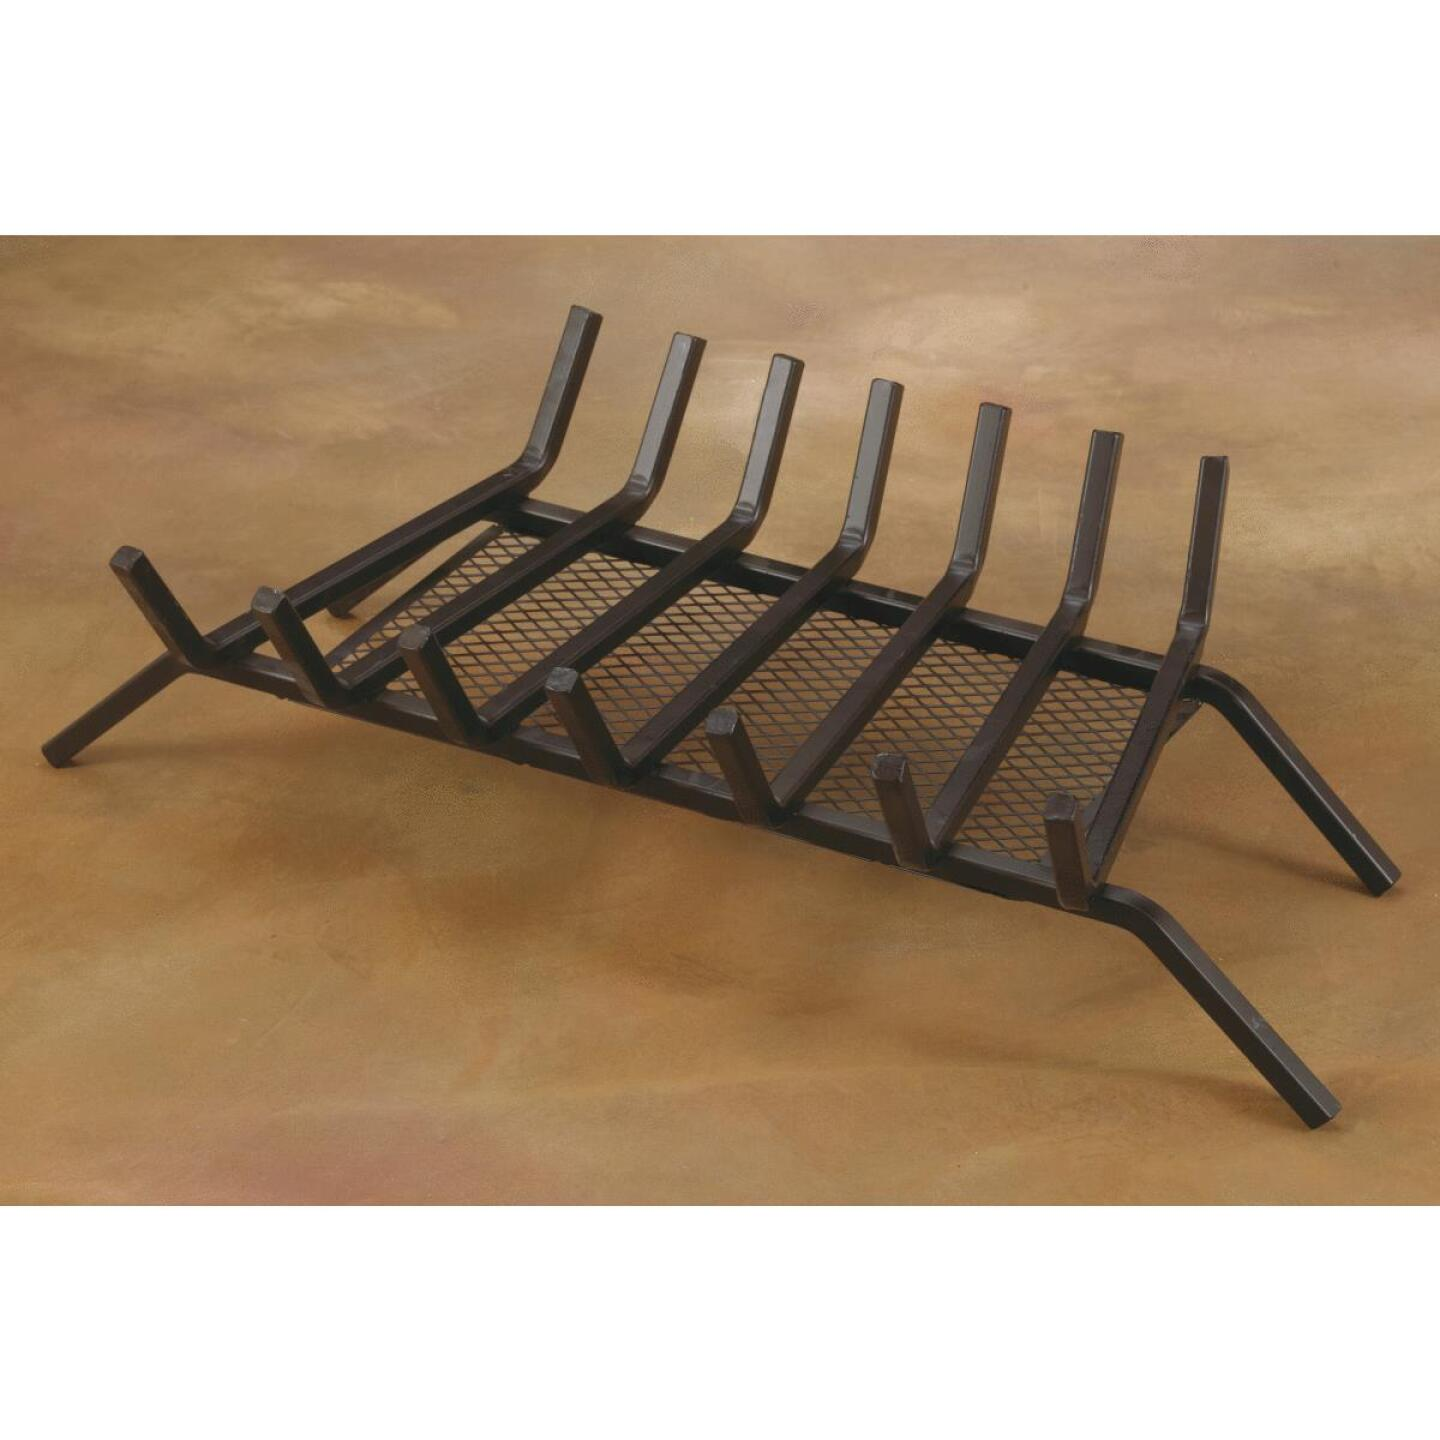 Home Impressions 30 In. Steel Fireplace Grate with Ember Screen Image 2